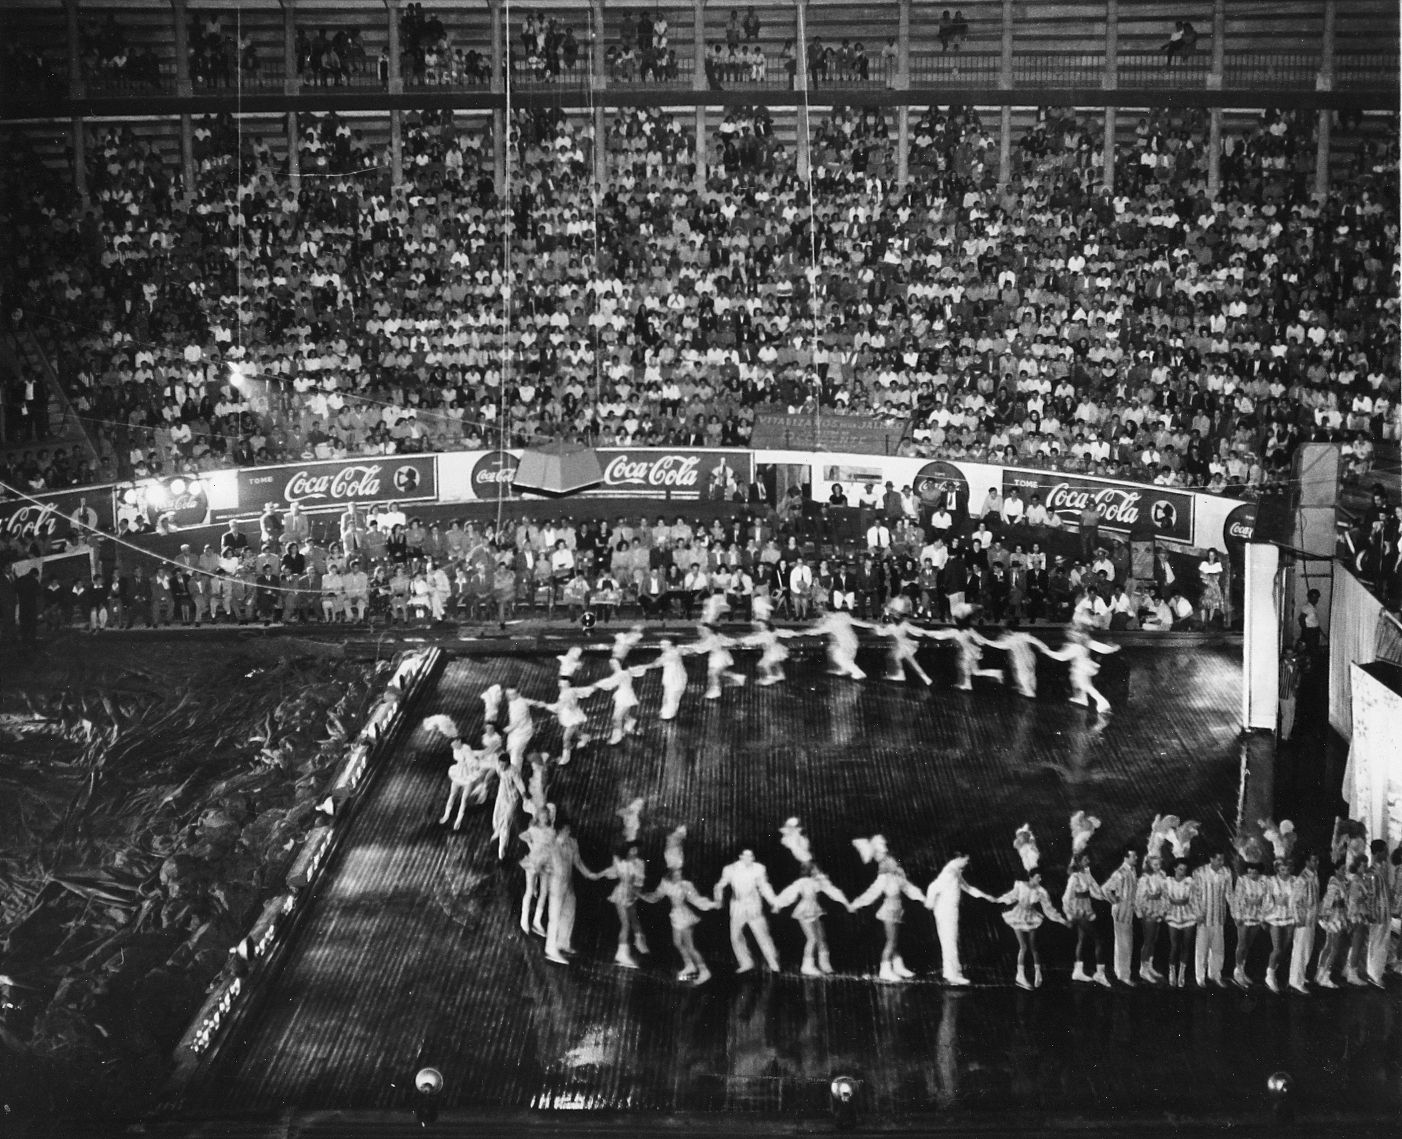 Ice show in 1944. Cast on large ice in an unidentified arena.